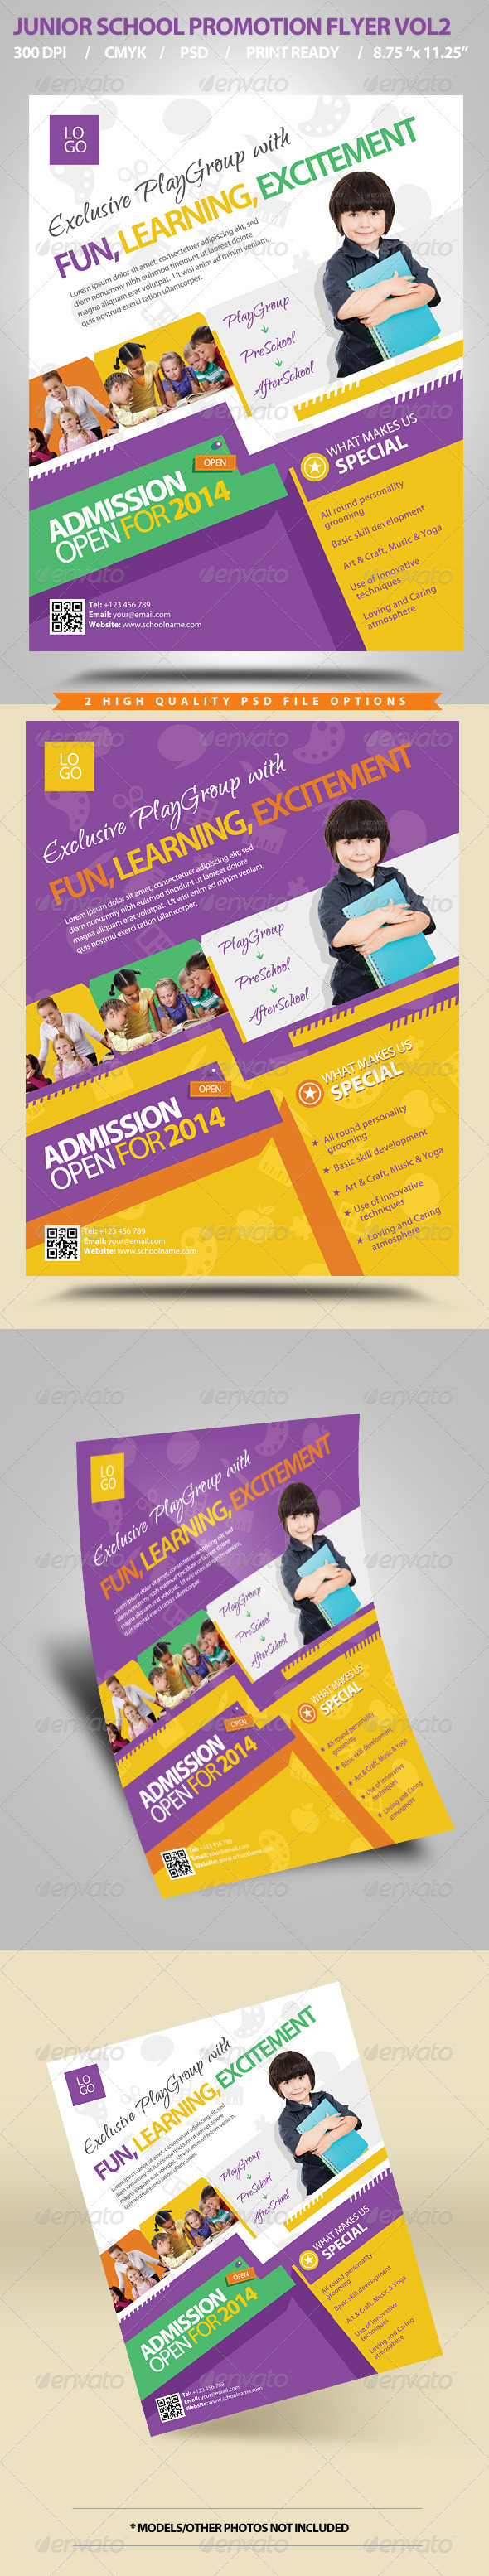 Junior School Promotion Flyers Vol2 - Corporate Flyers